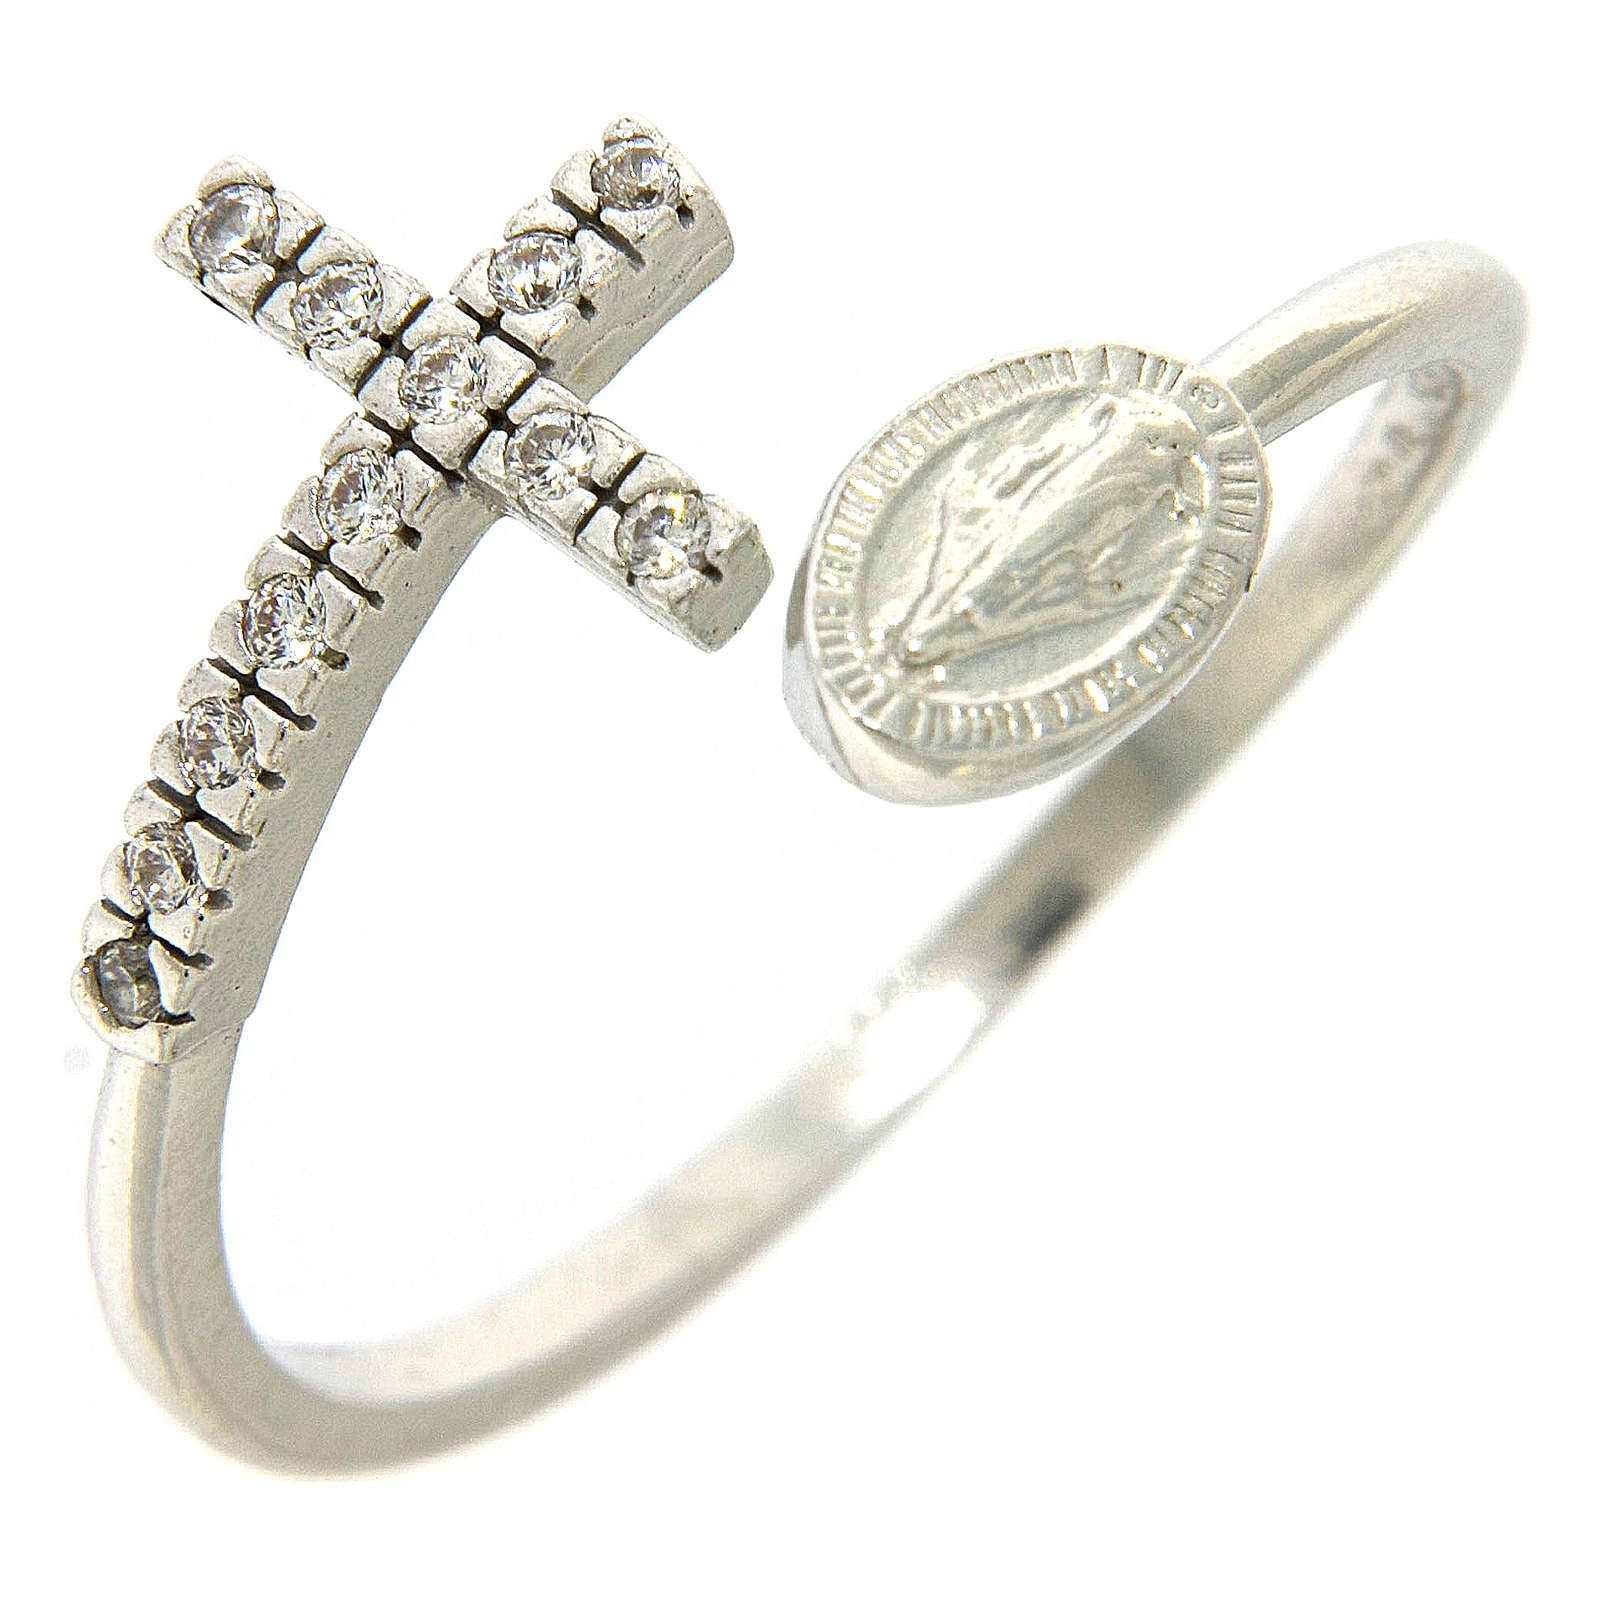 Ring with miraculous medal in 925 silver and white rhinestones 3